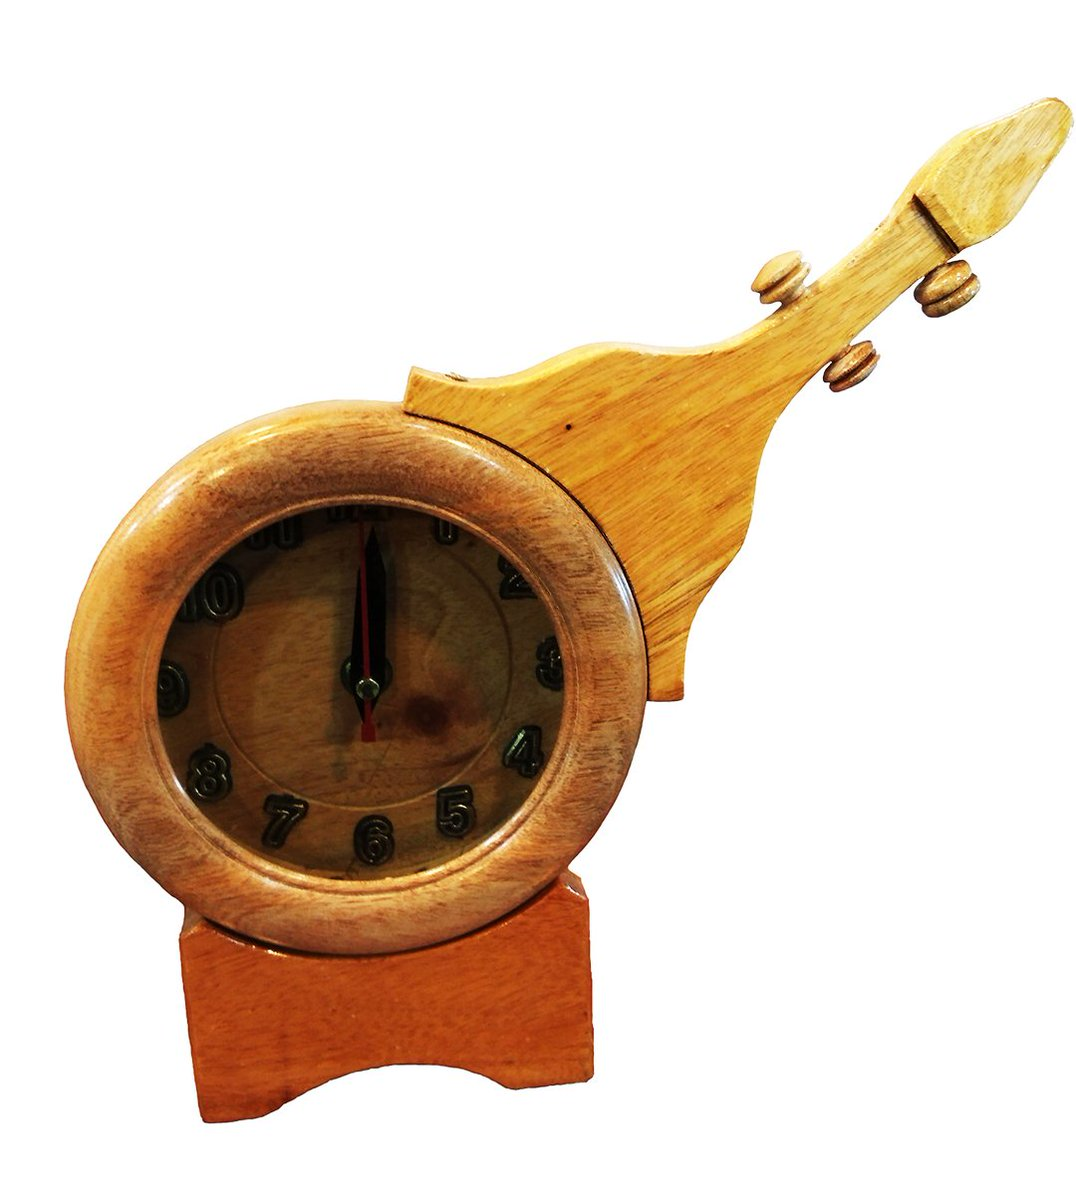 Dhakai Mart On Twitter A Wooden Guitar Clock Made In Bangladesh